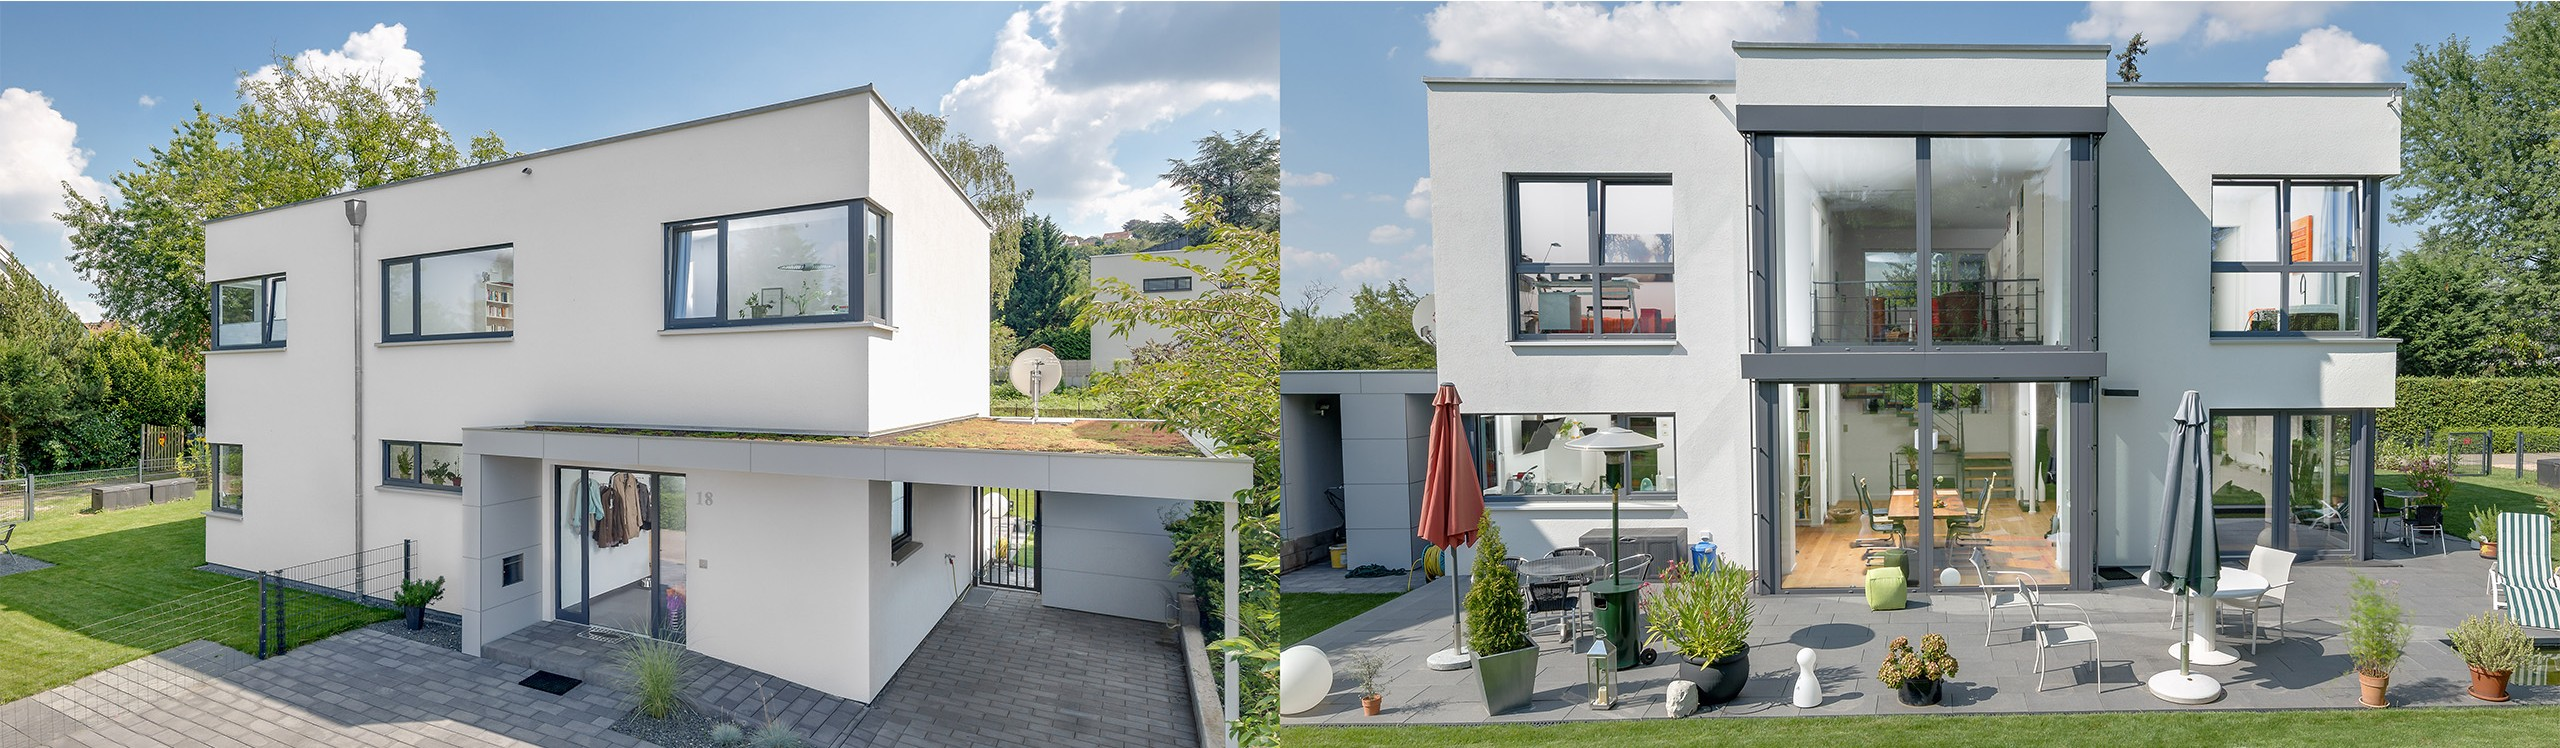 00022-Photographer-Architecture-Achitecture-exterior-Advertising-Photographer-Stuttgart-Andreas-Martin